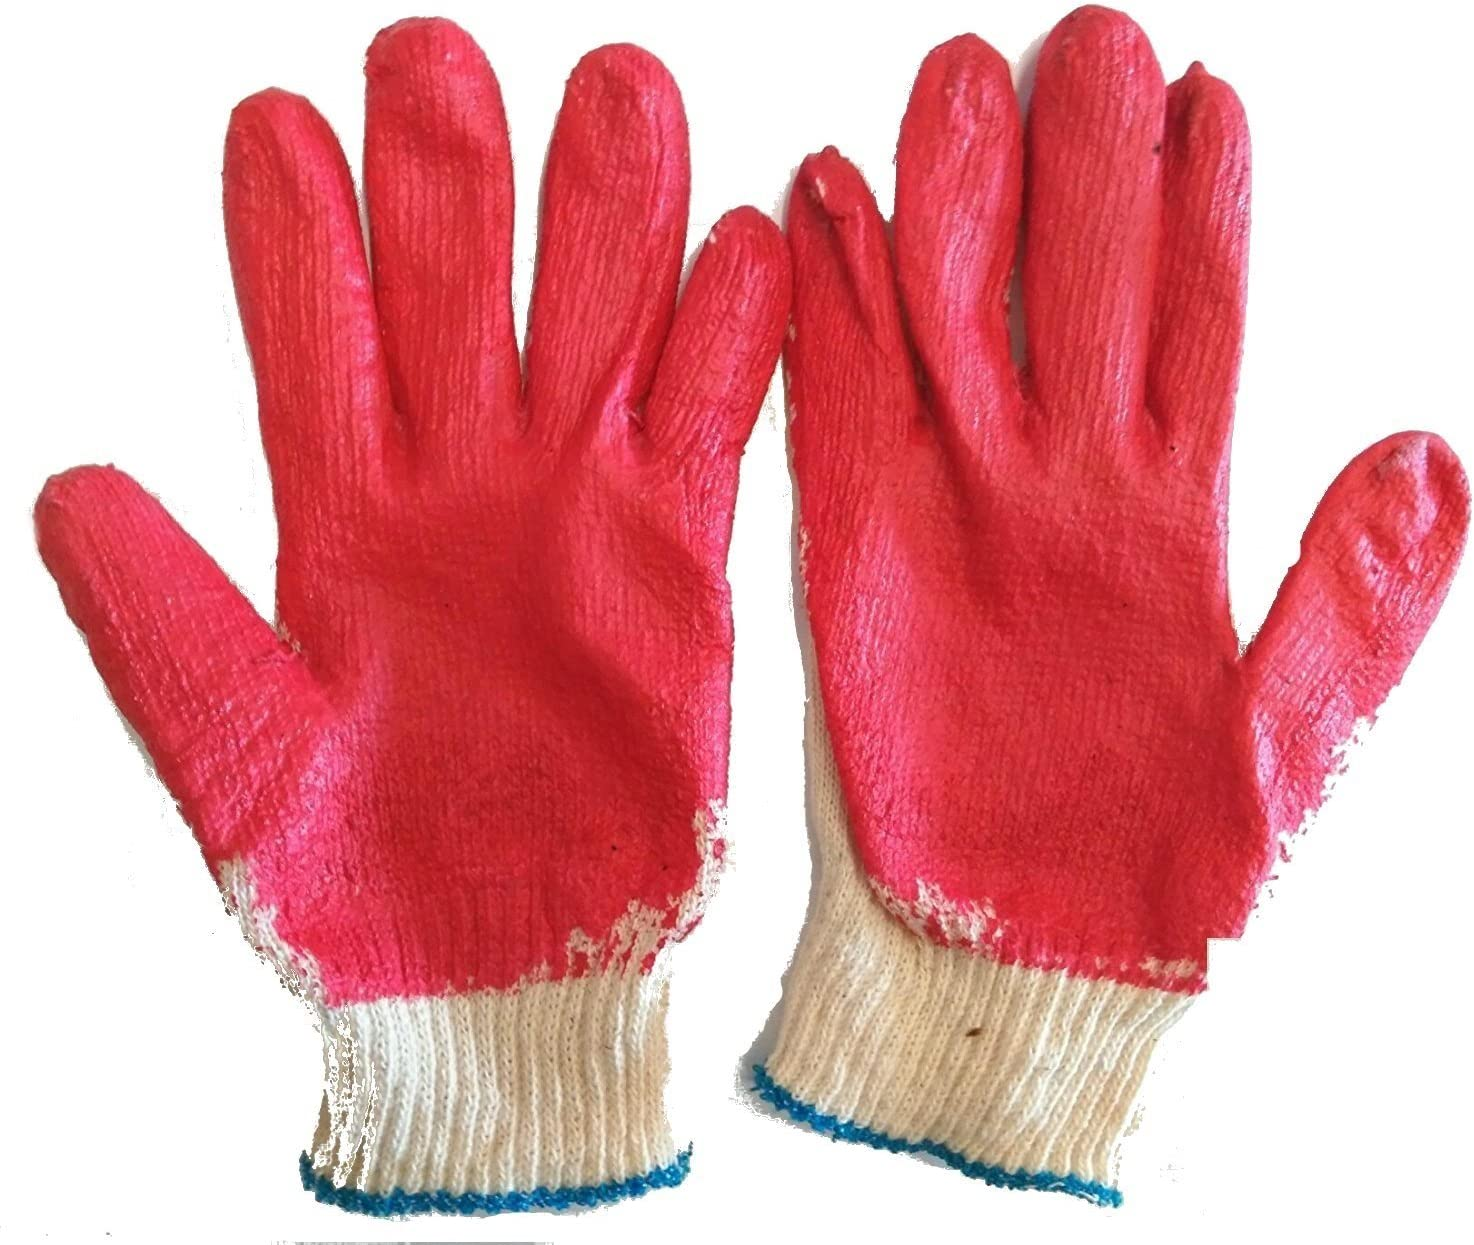 MADE IN KOREA WHOLESALE 10 PAIRS Red Latex Rubber Palm Coated Work Gloves